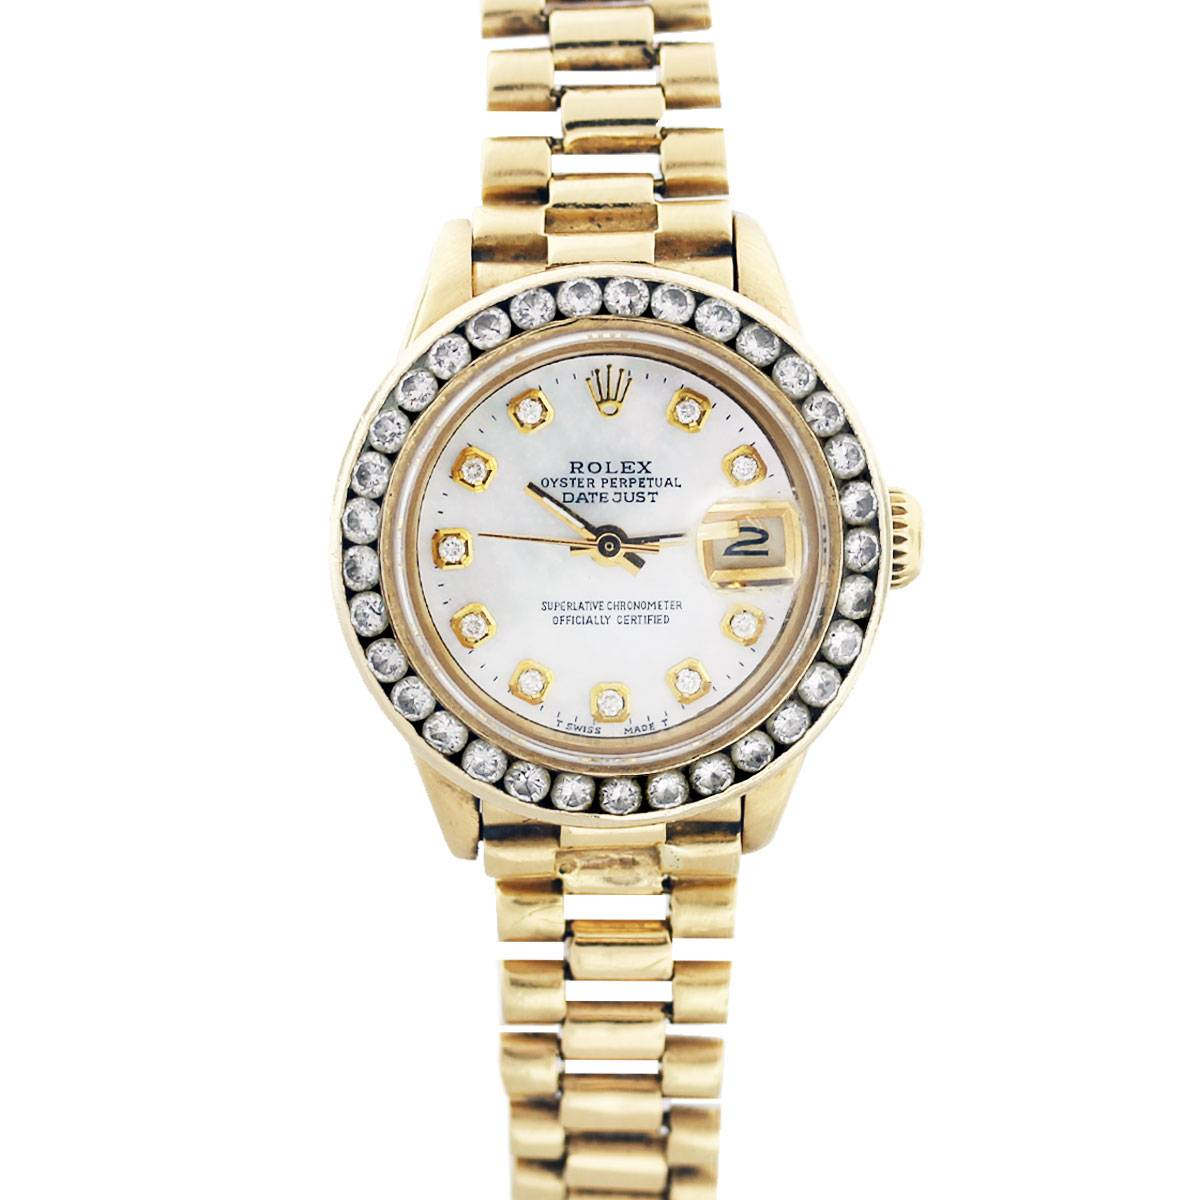 Rolex 18K Yellow Gold Presidential 6917 Mother of Pearl Diamond Watch